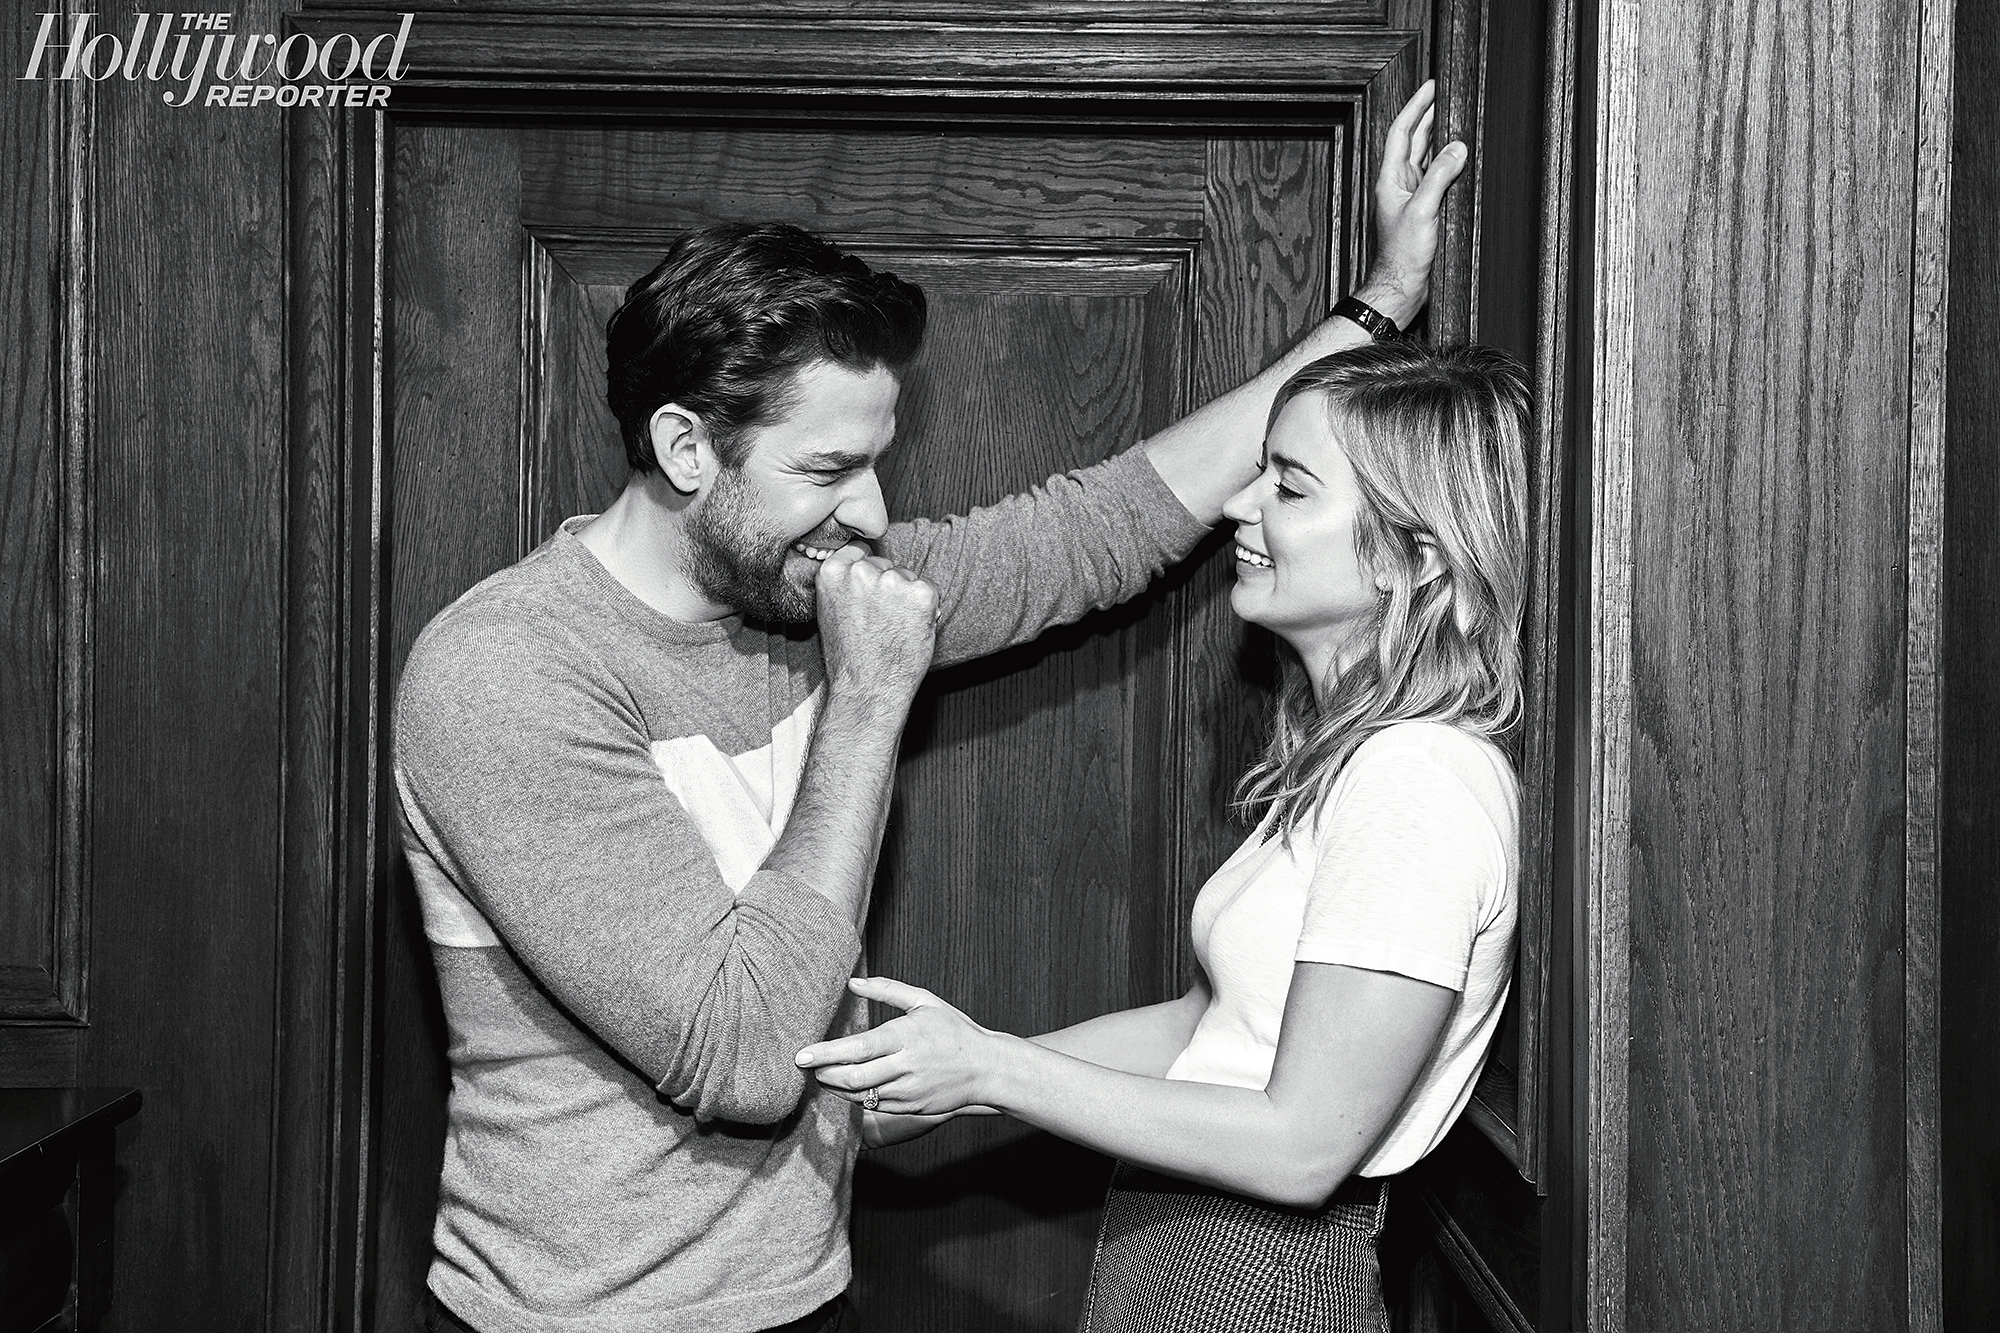 """John Krasinski Emily Blunt First Date Hollywood Reporter Rulebreakers - The pair — who met while Krasinski was dining with pal Justin Theroux — have close friendships with many other celebrities, including Chris Pratt who gushed over them to The Hollywood Reporter. """"They are a down-to-earth couple, both really fun and funny,"""" he said."""